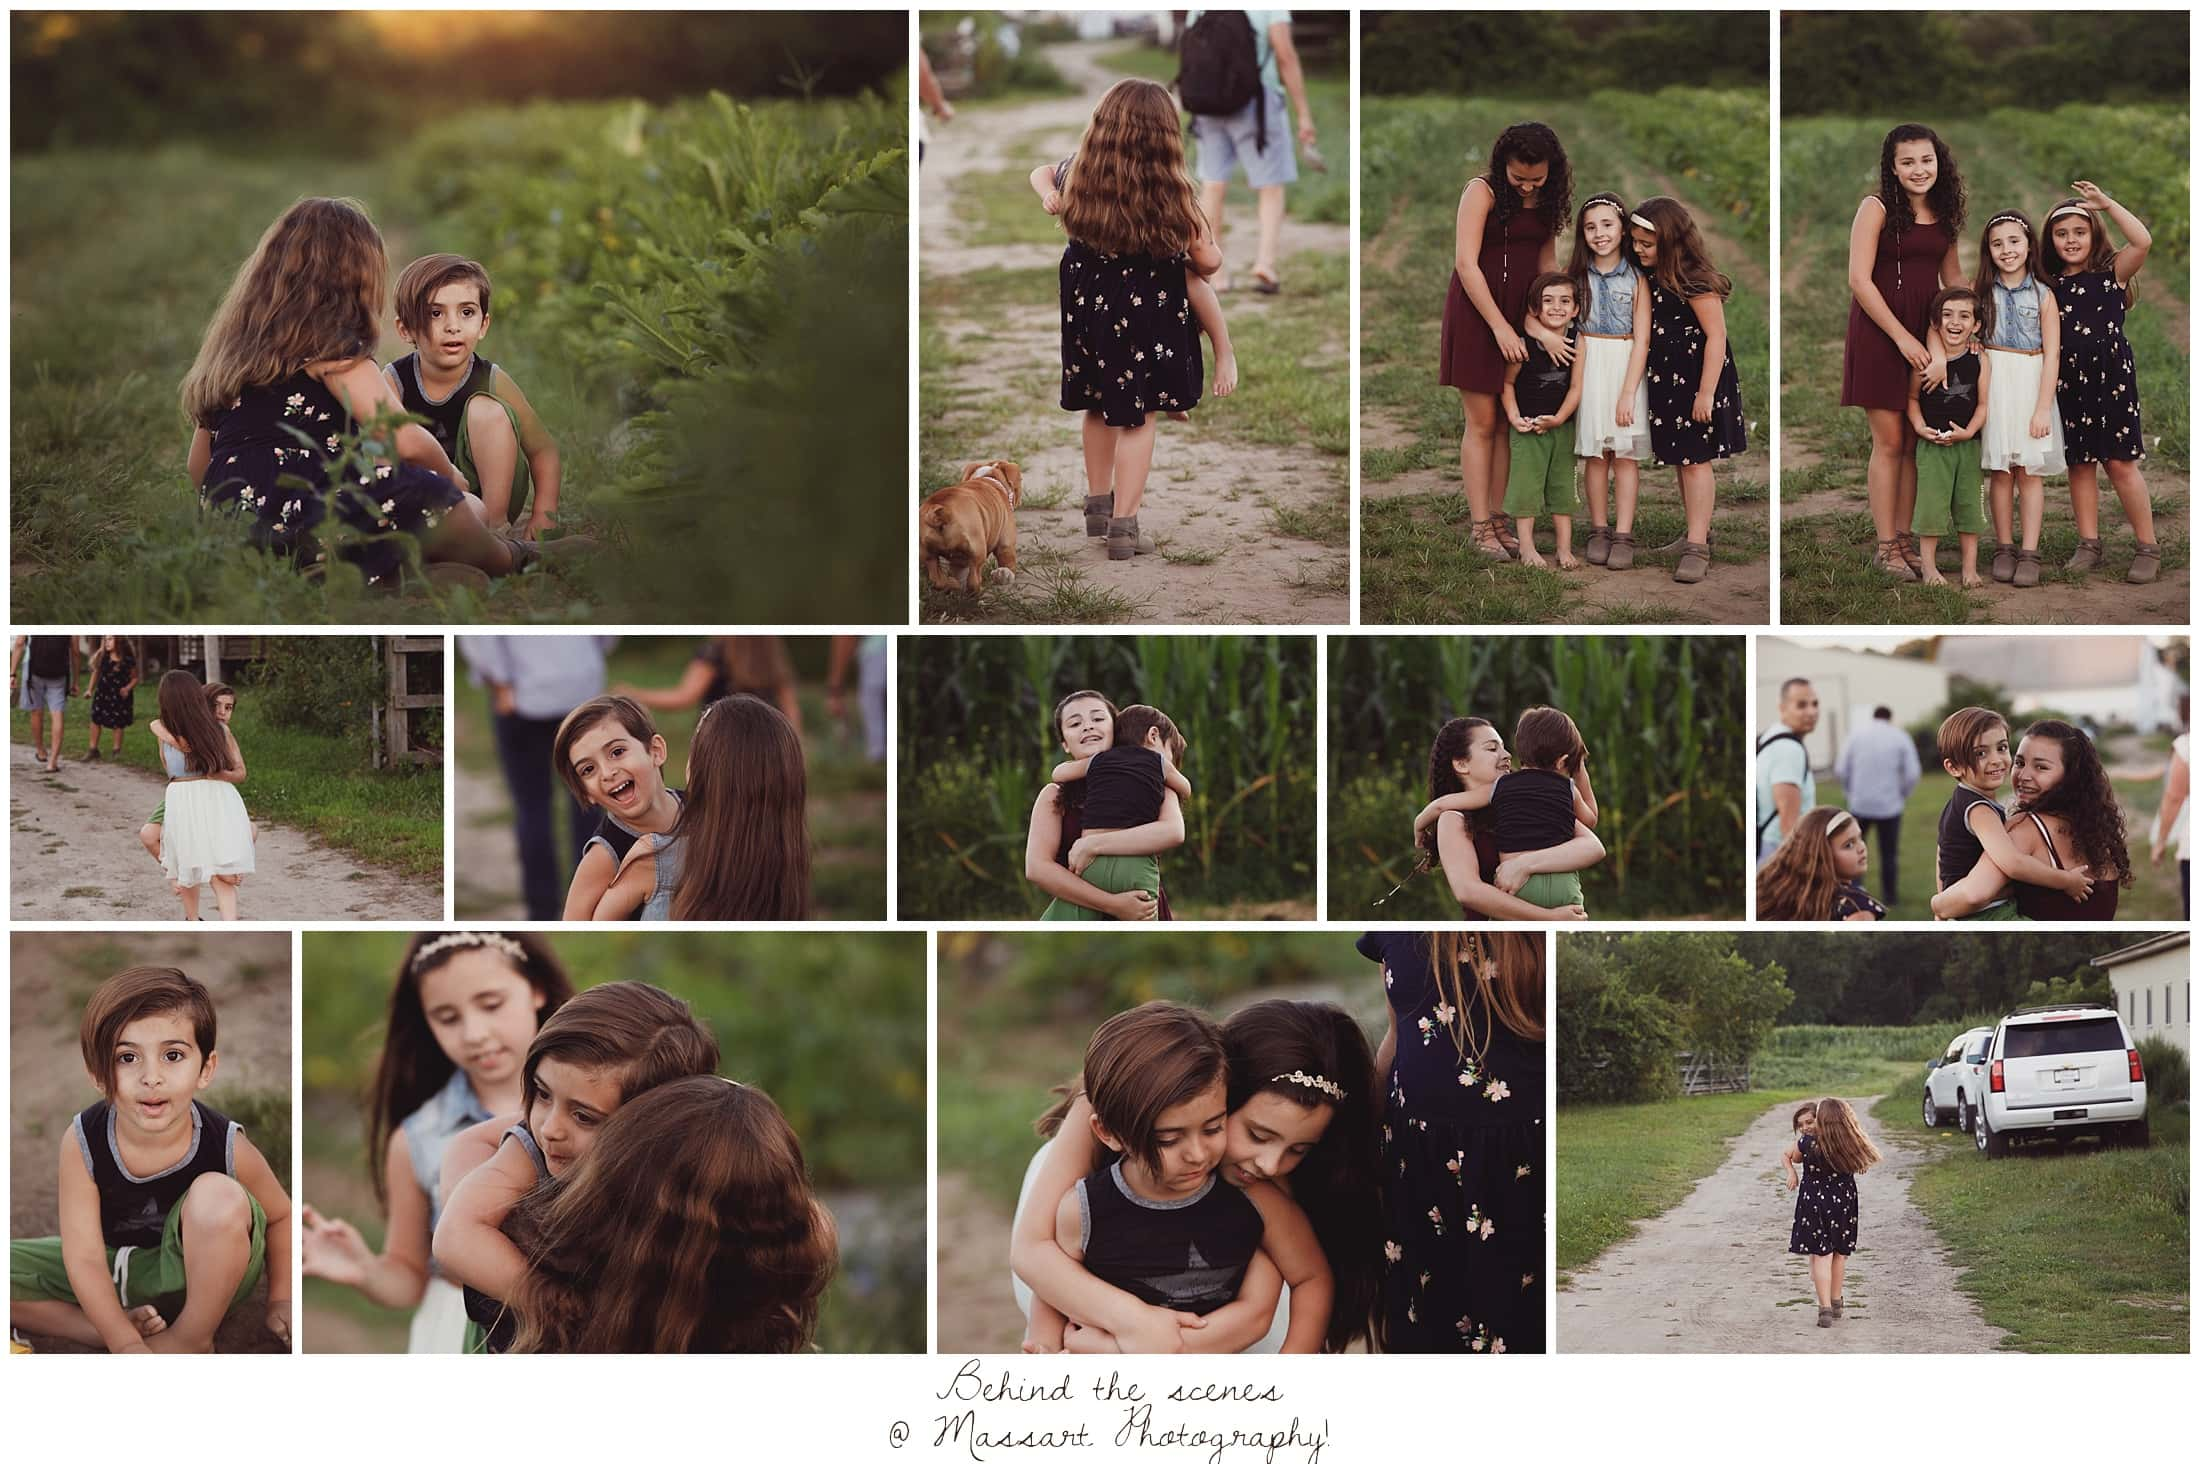 Behind the scenes with the sisters and the photographer's son playing during their outdoor family portrait session captured by Massart Photography of Warwick, RI